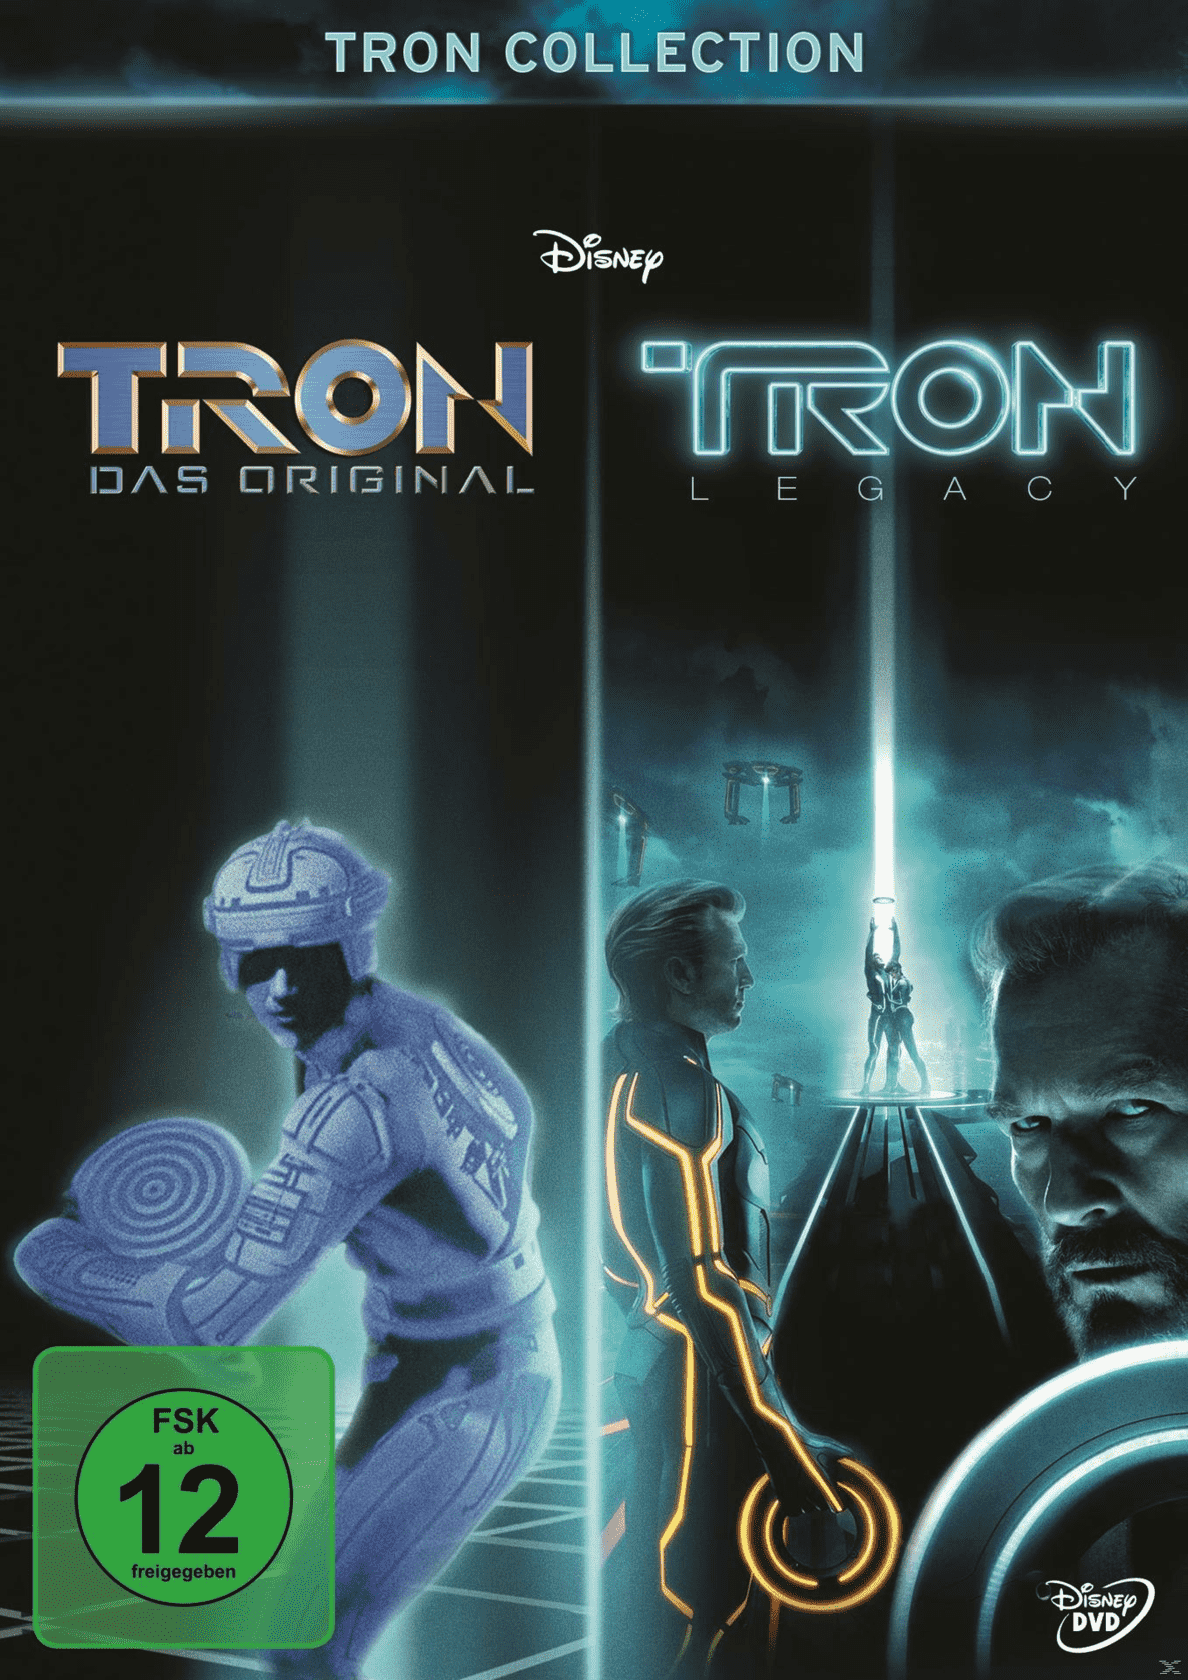 Tron Collection auf DVD